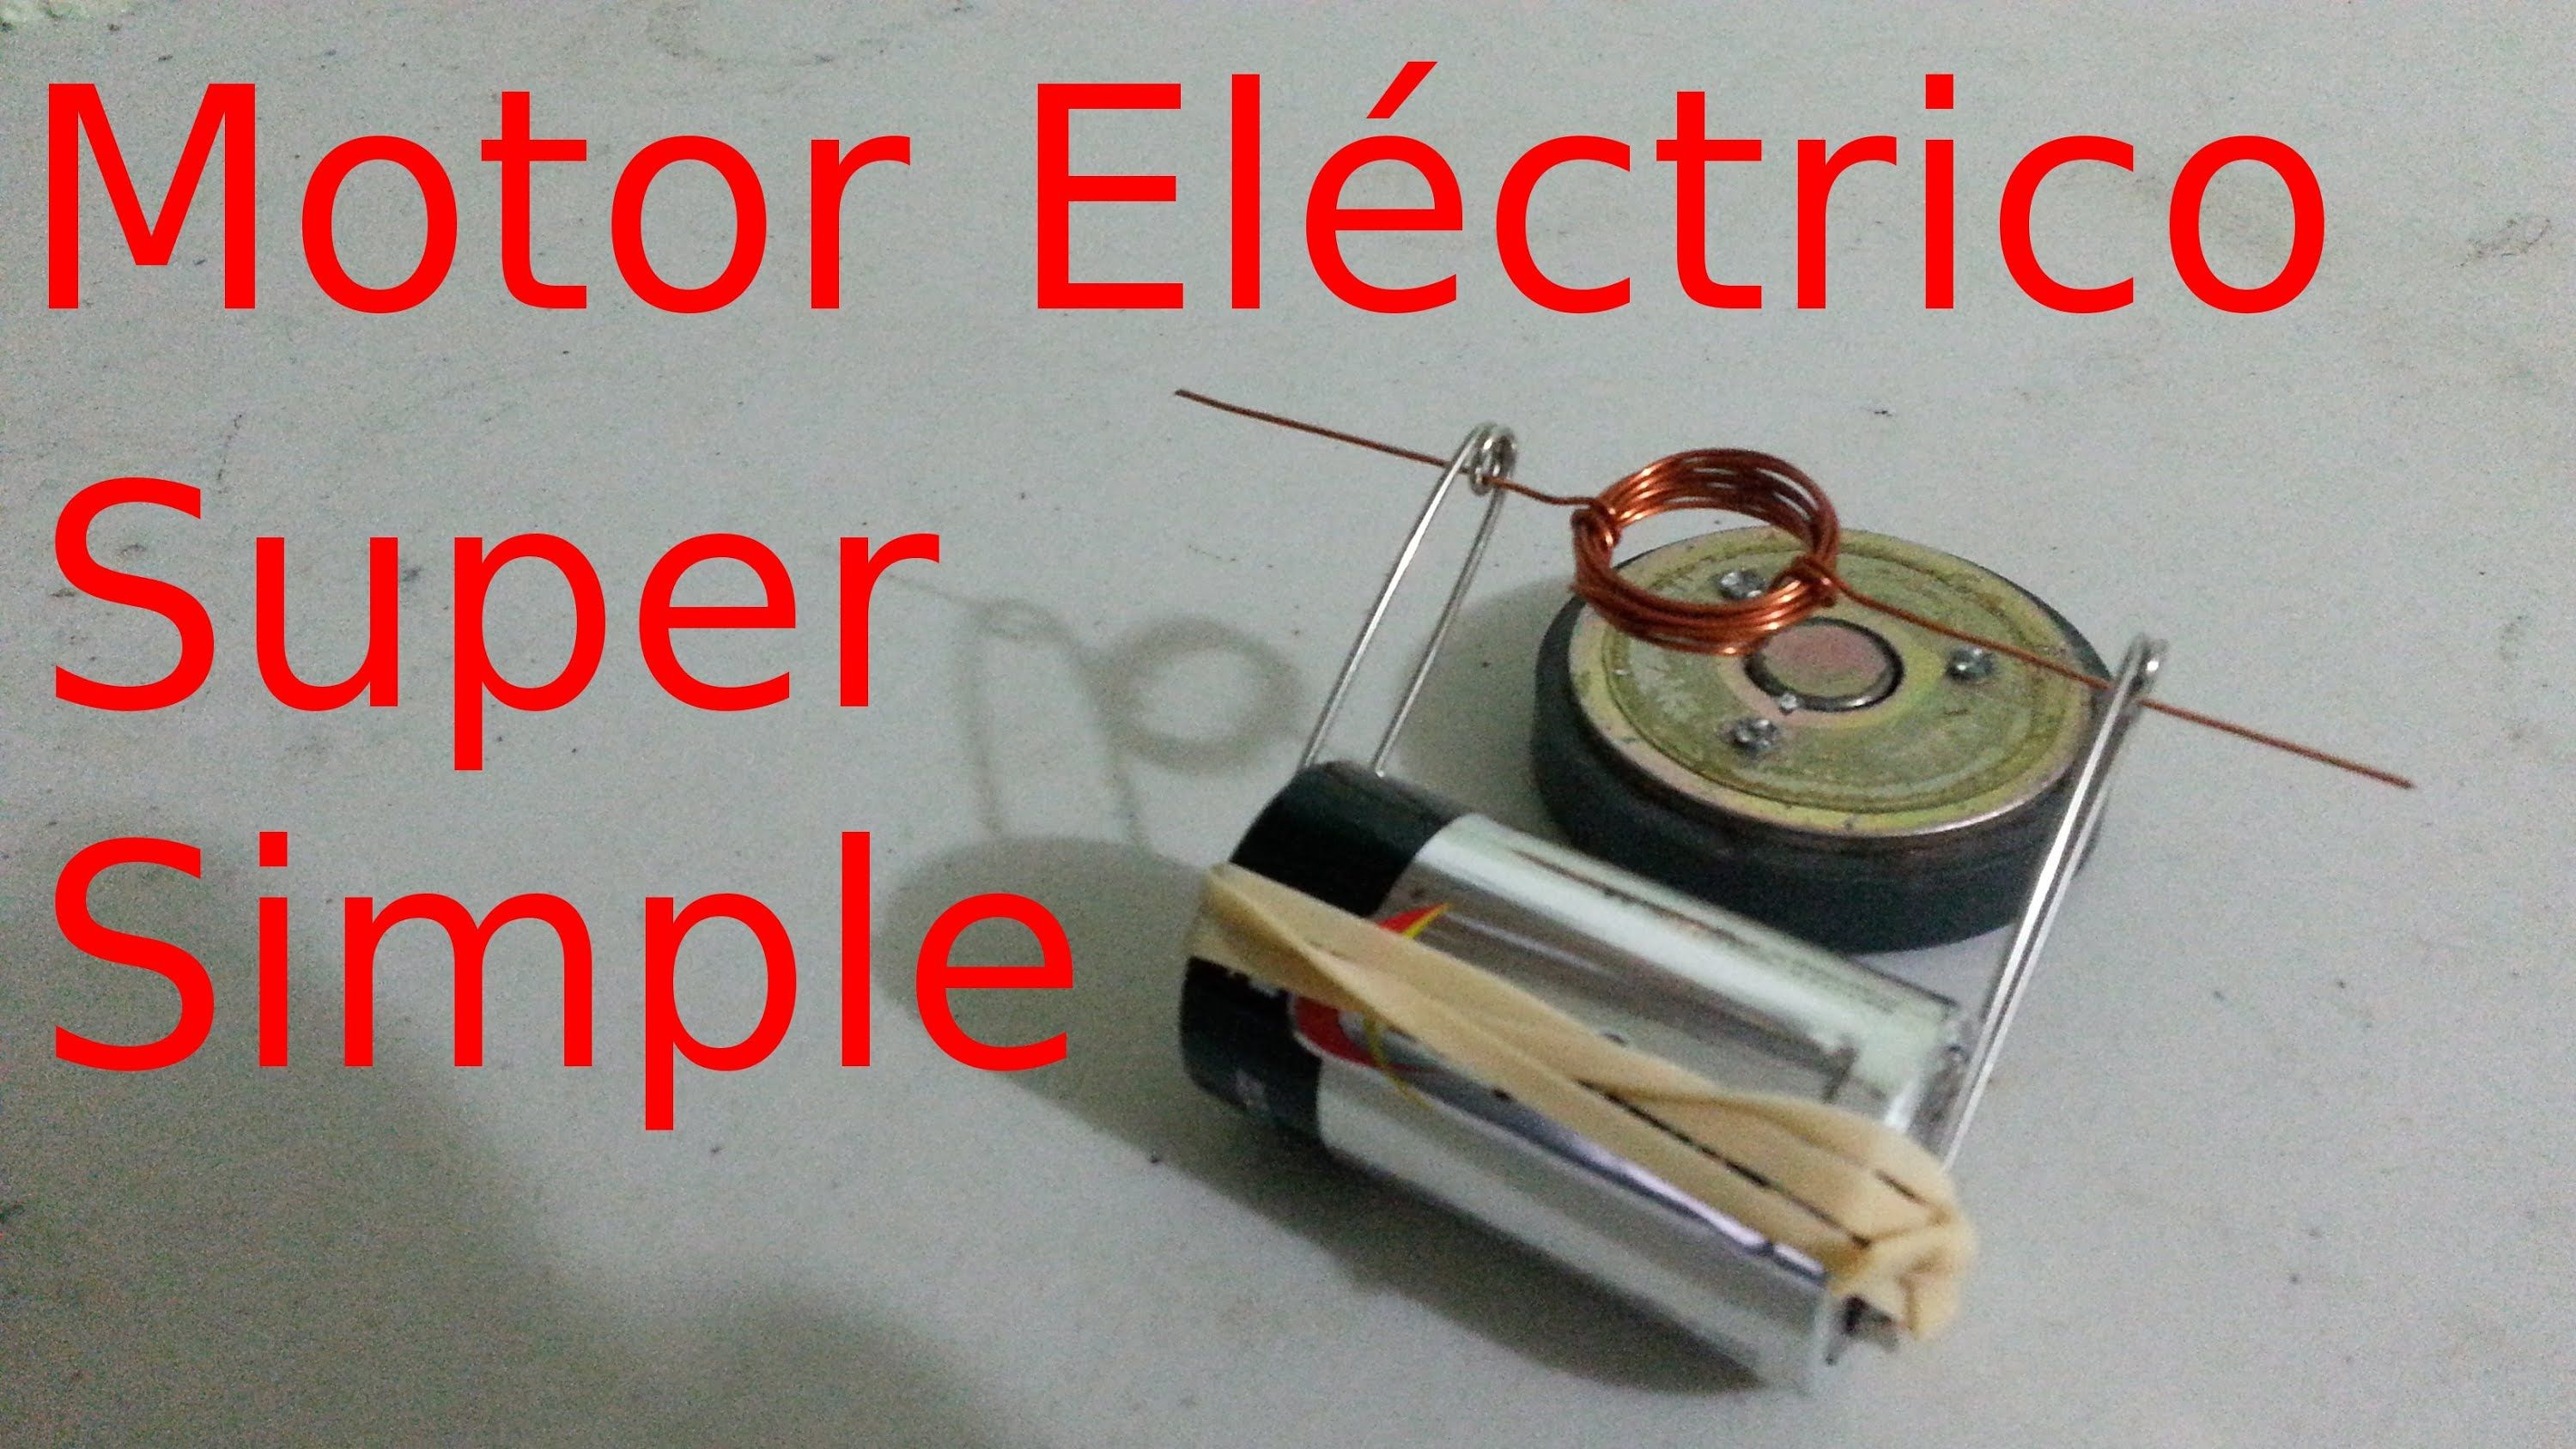 Circuito Electrico Simple Materiales : El circuito eléctrico simple monografias